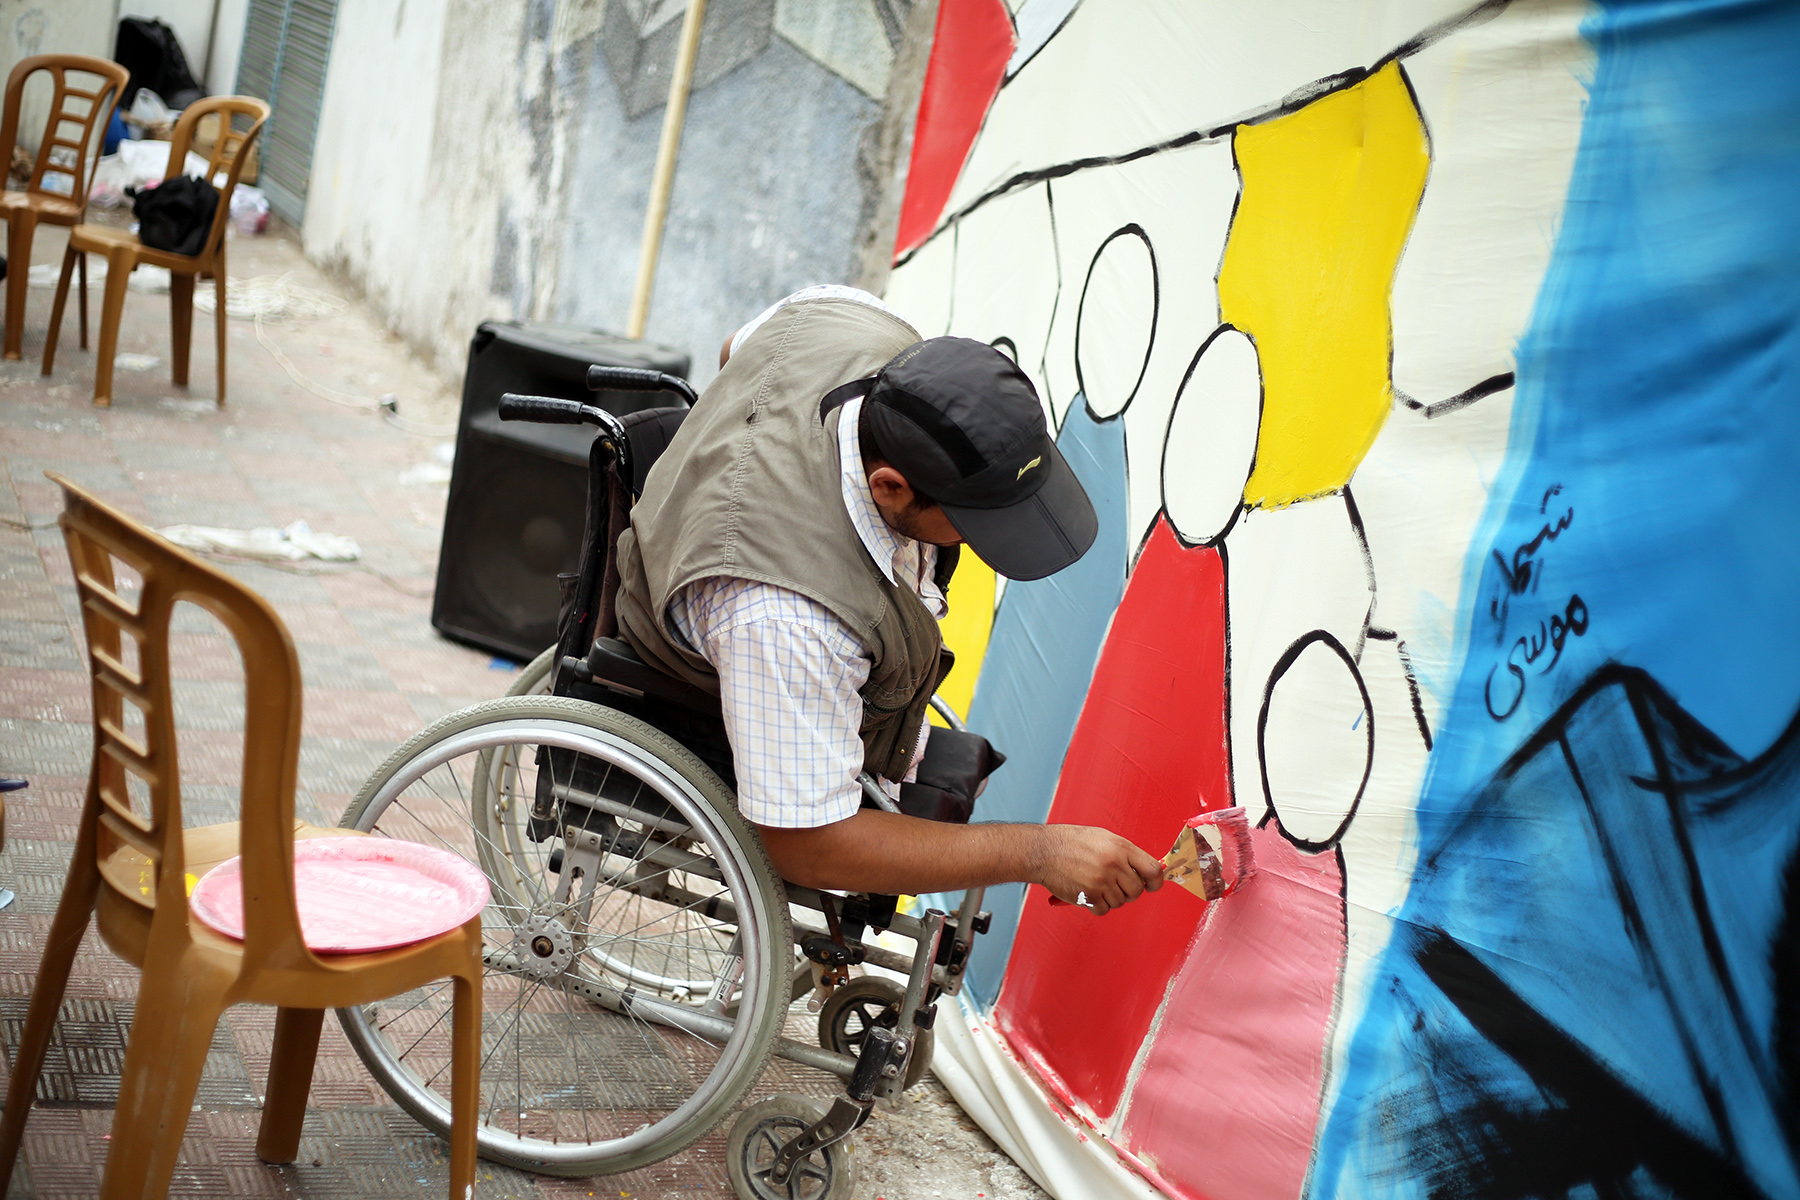 Enhancing the role of youth with disabilities in society